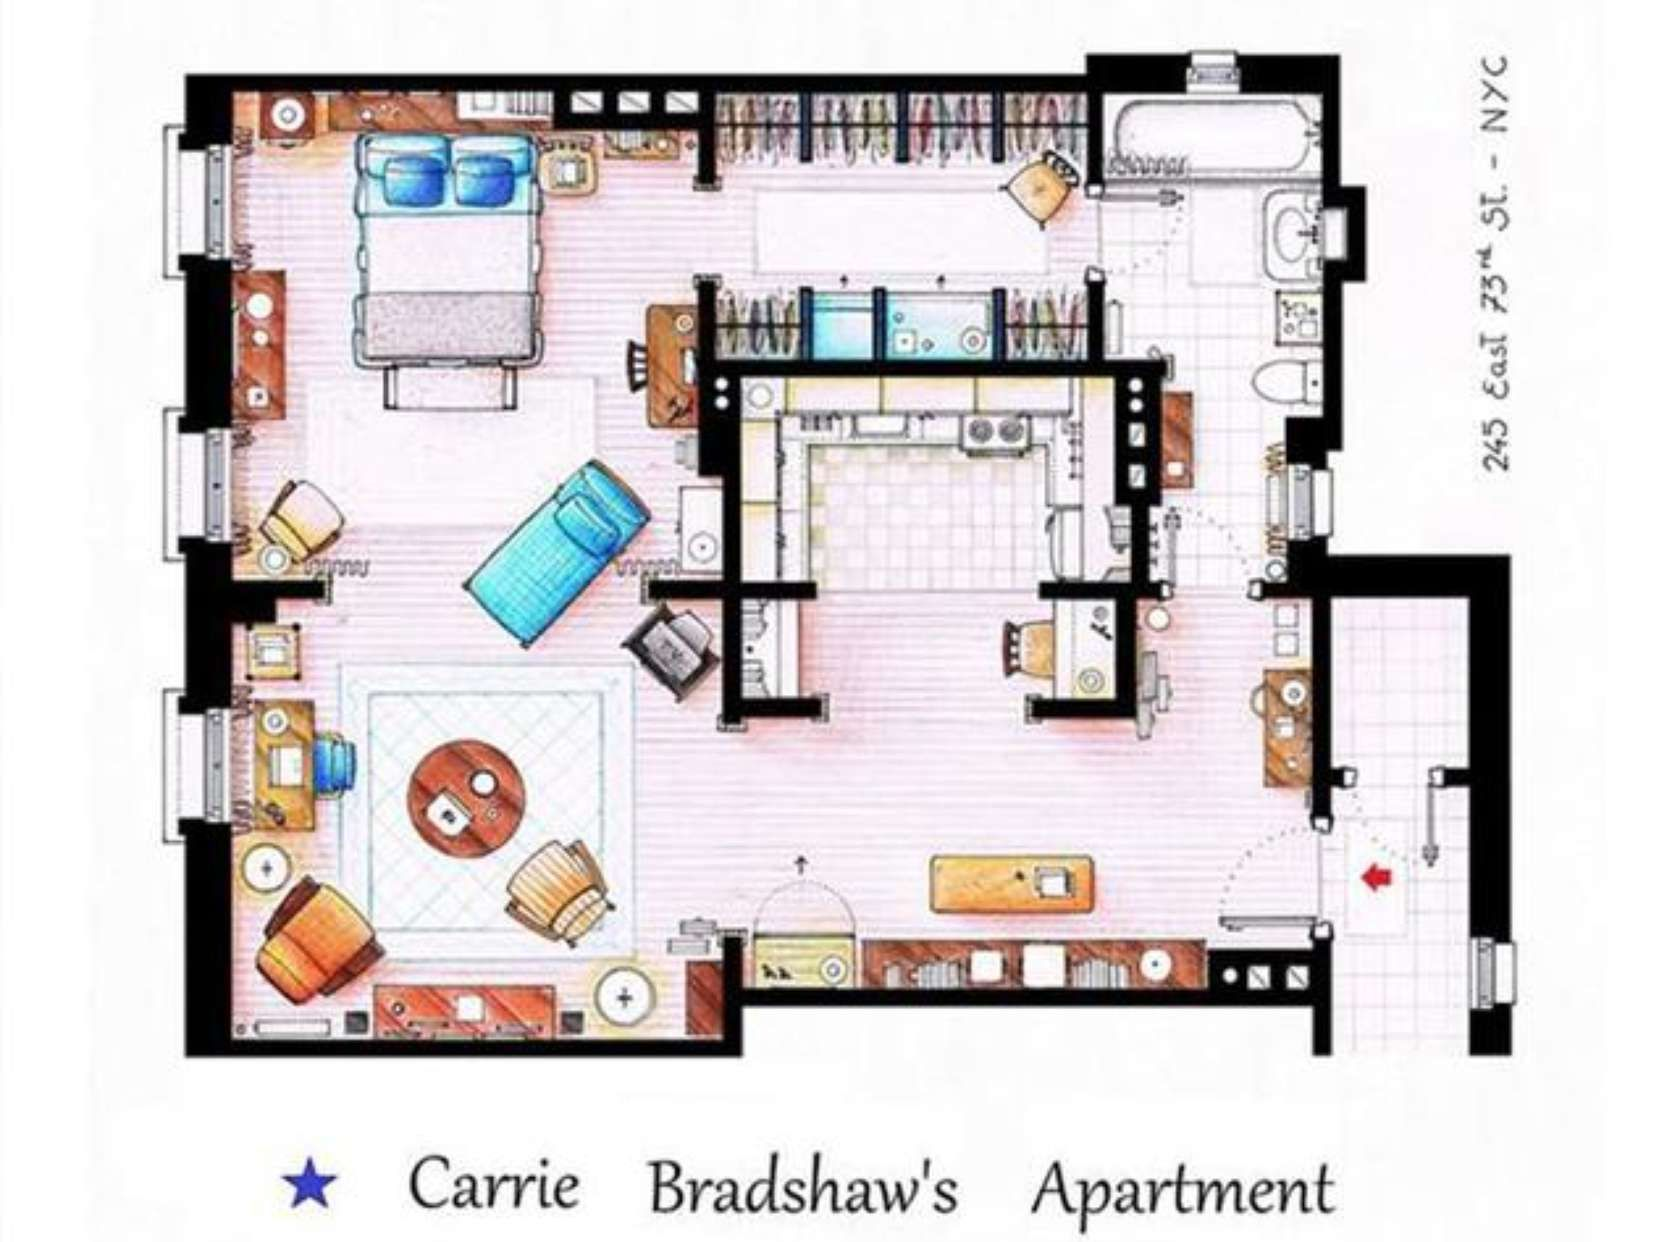 Sex In The City Carrie Bradshawu0027s Apartment Floor Plan